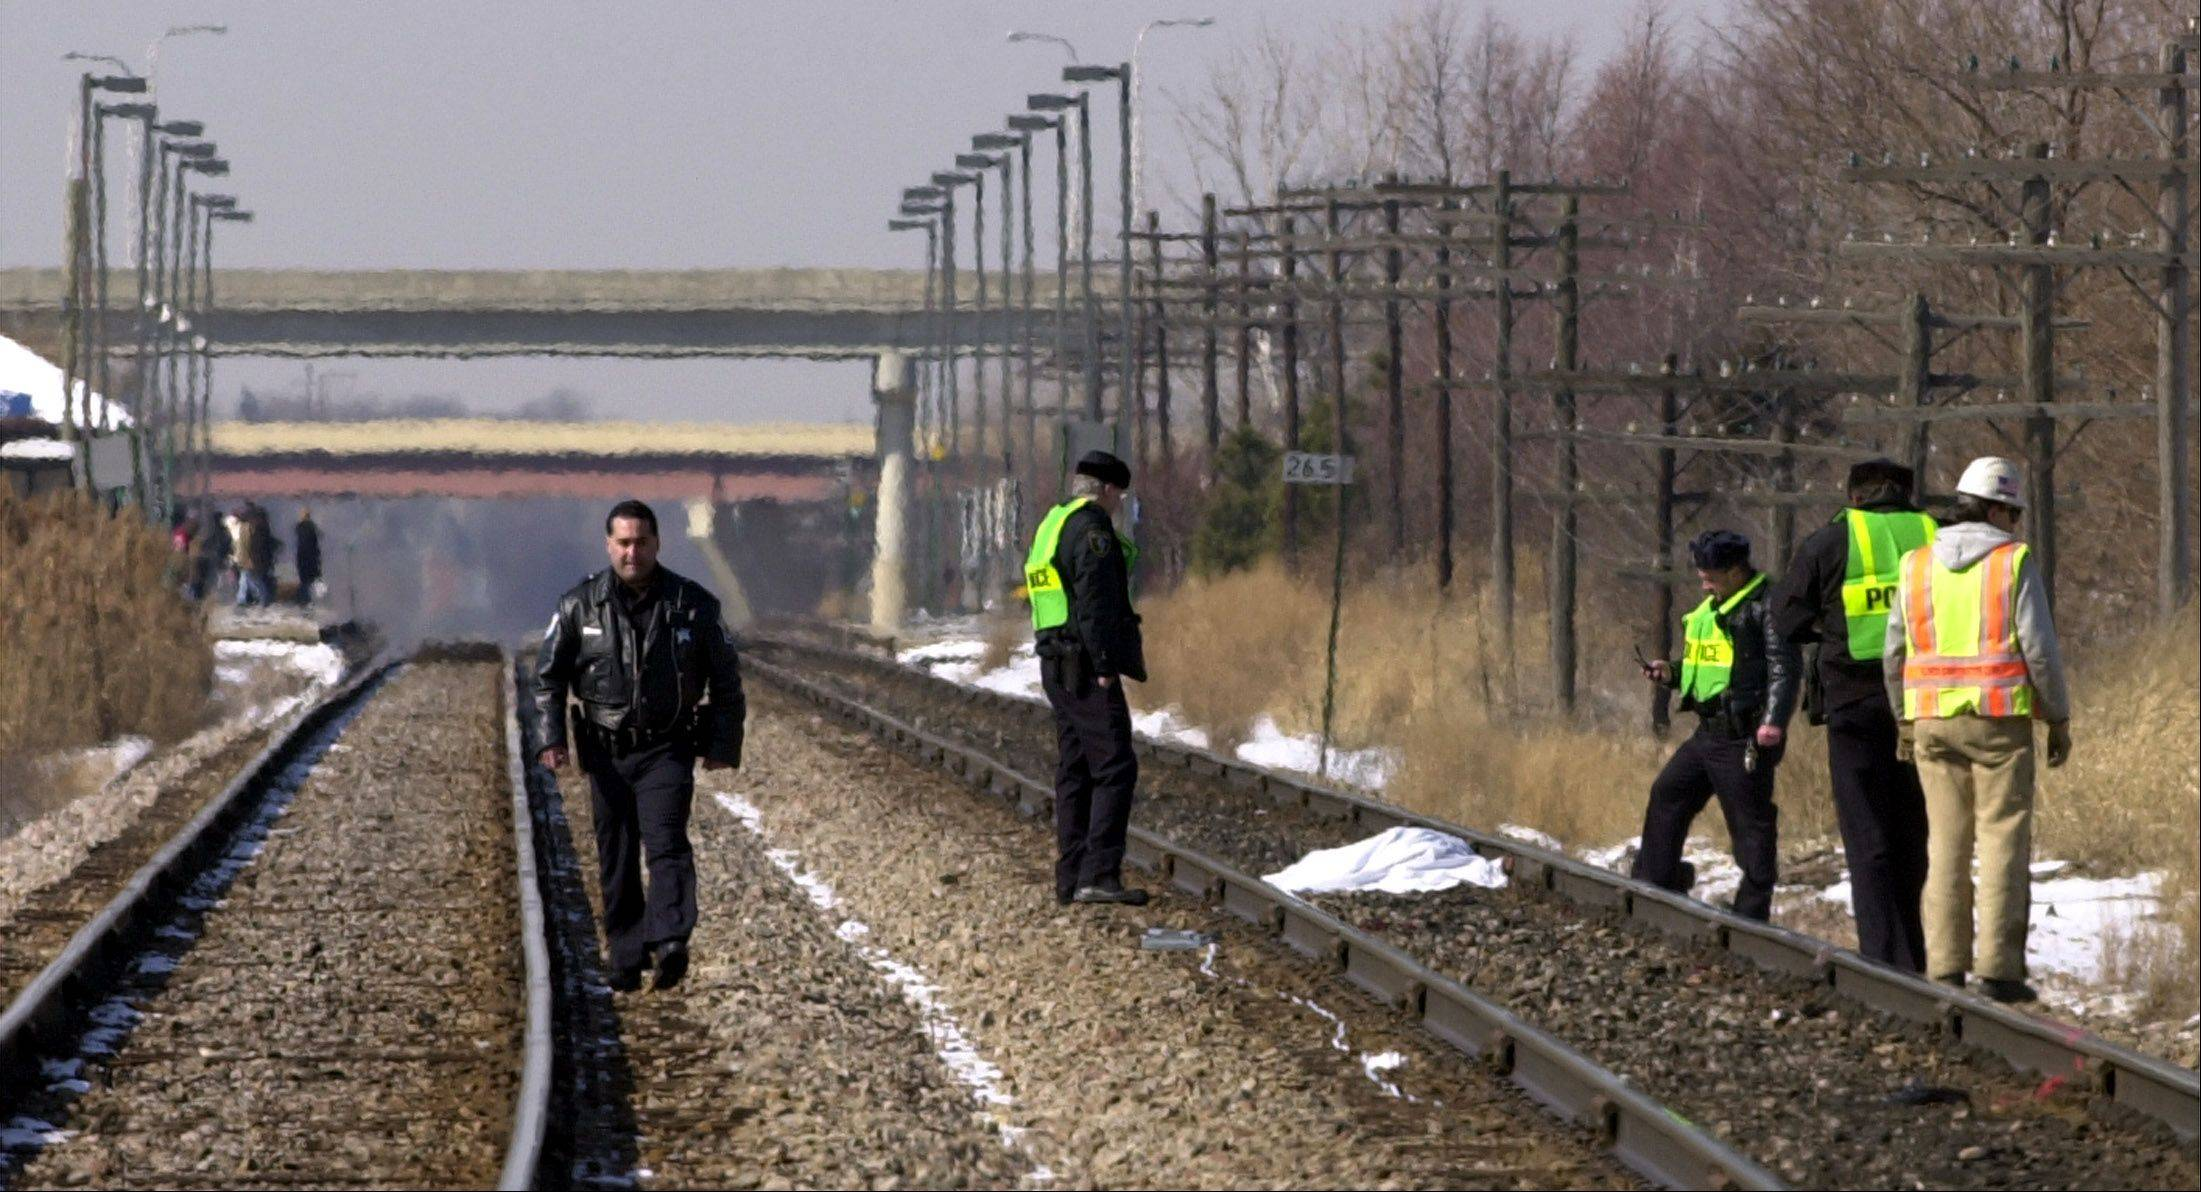 Metra�s police force has problems, a consultants� report found.